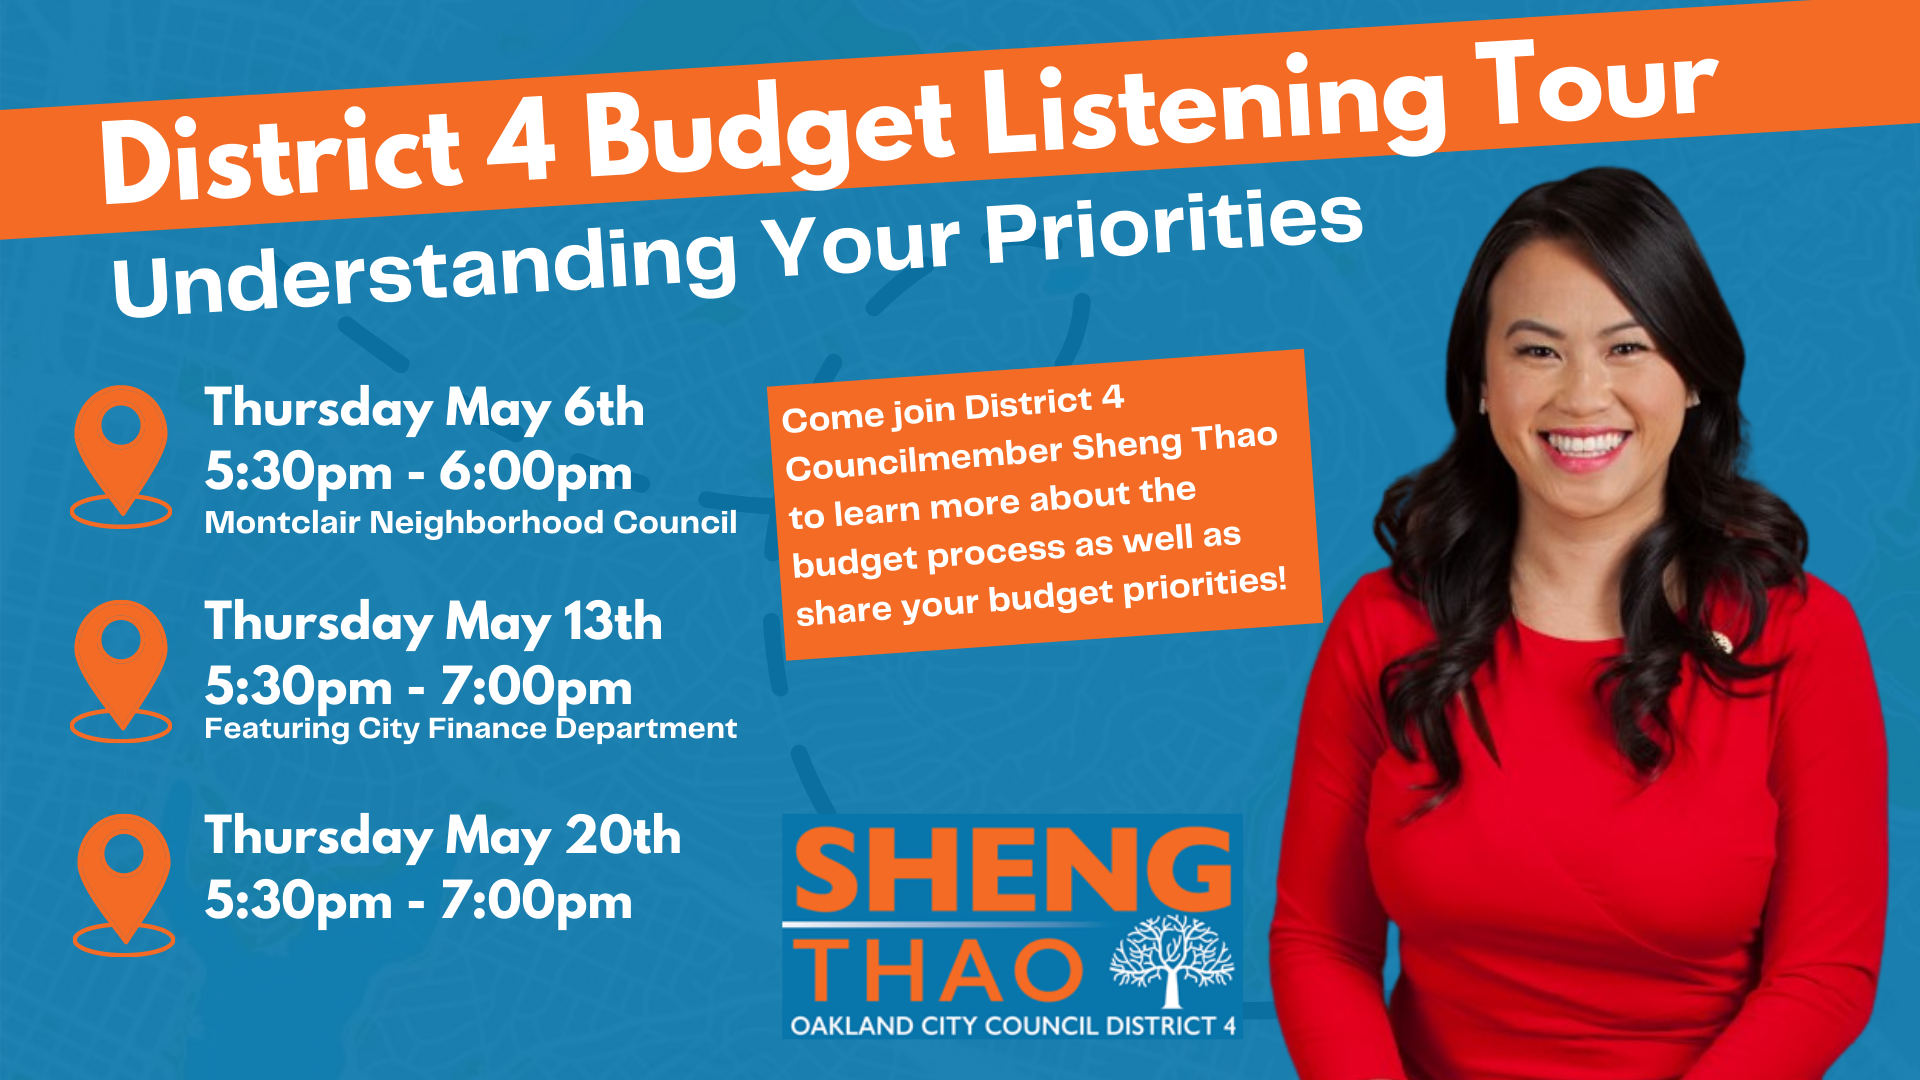 Budget listening tour graphic with dates and times. see body for information.